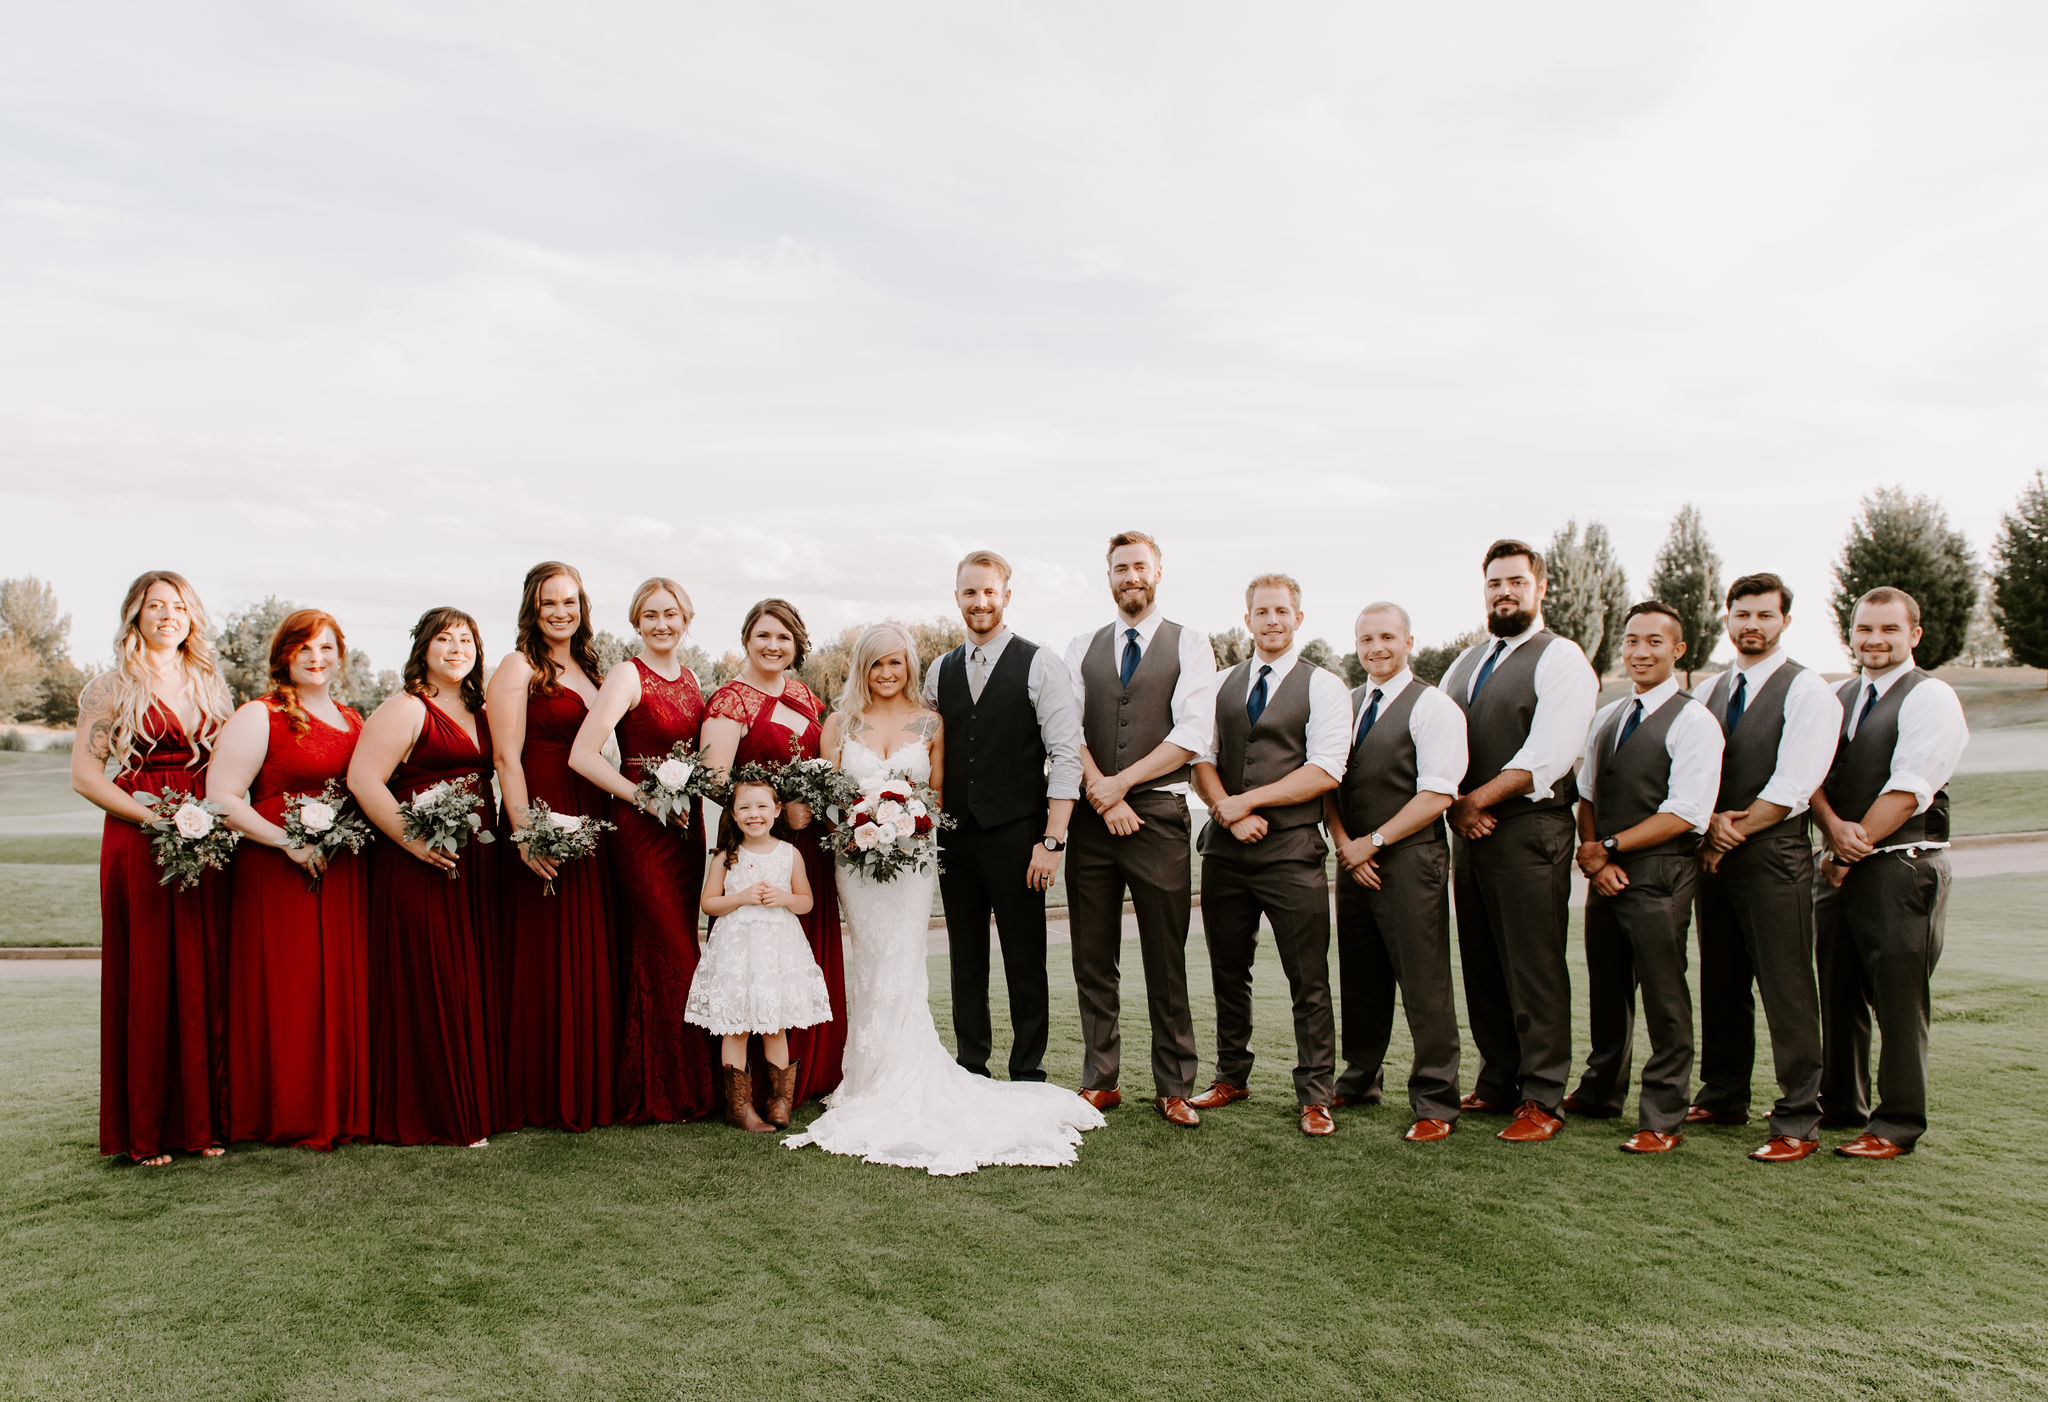 Bridalbliss.com | Portland Wedding | Oregon Event Planning and Design | Lundyn Bridge Photography